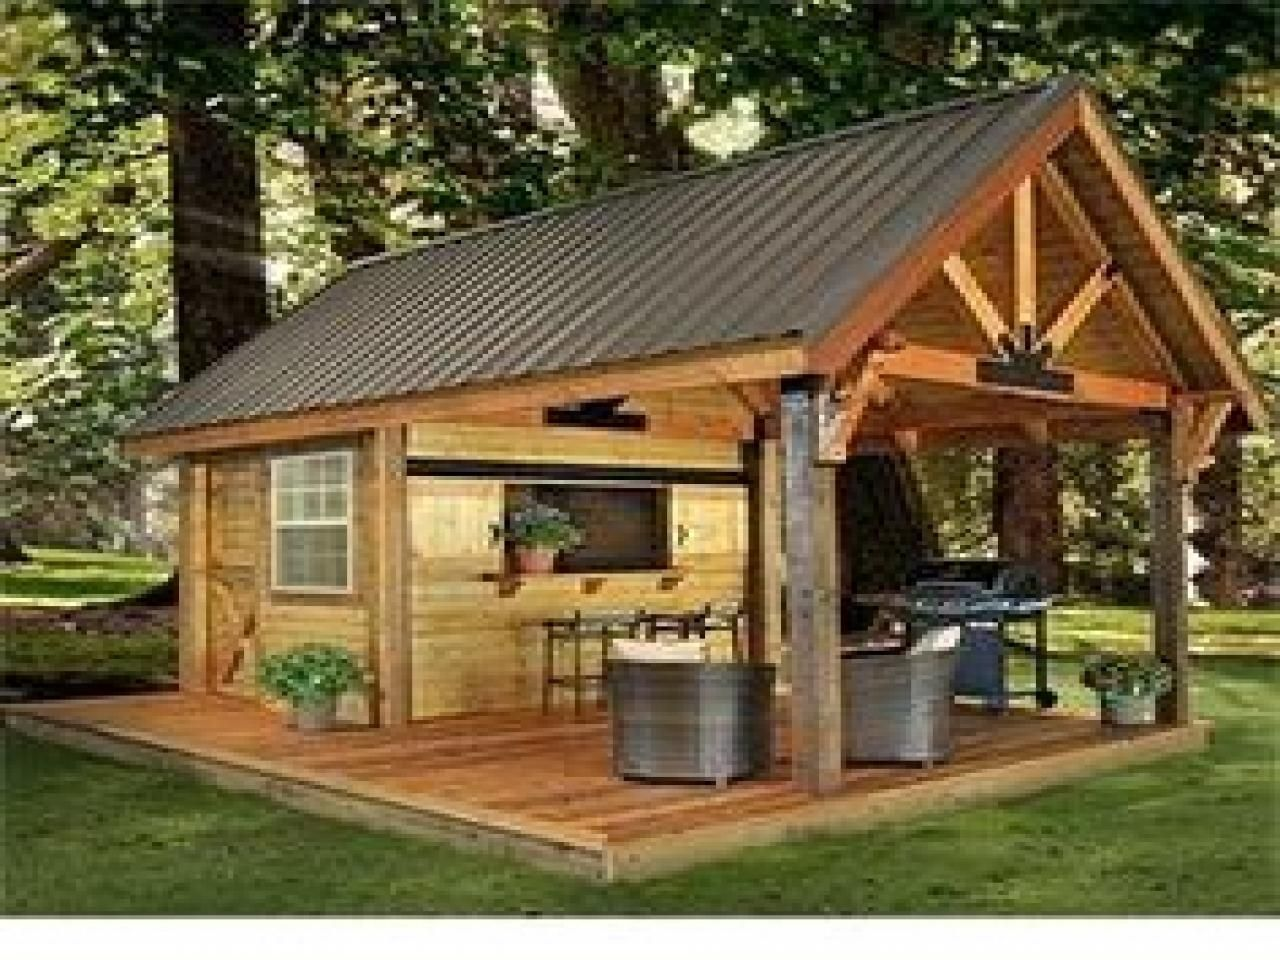 Great Man Cave Shed Plans | Party shed, Garden, Backyard on Man Cave Patio Ideas id=90143